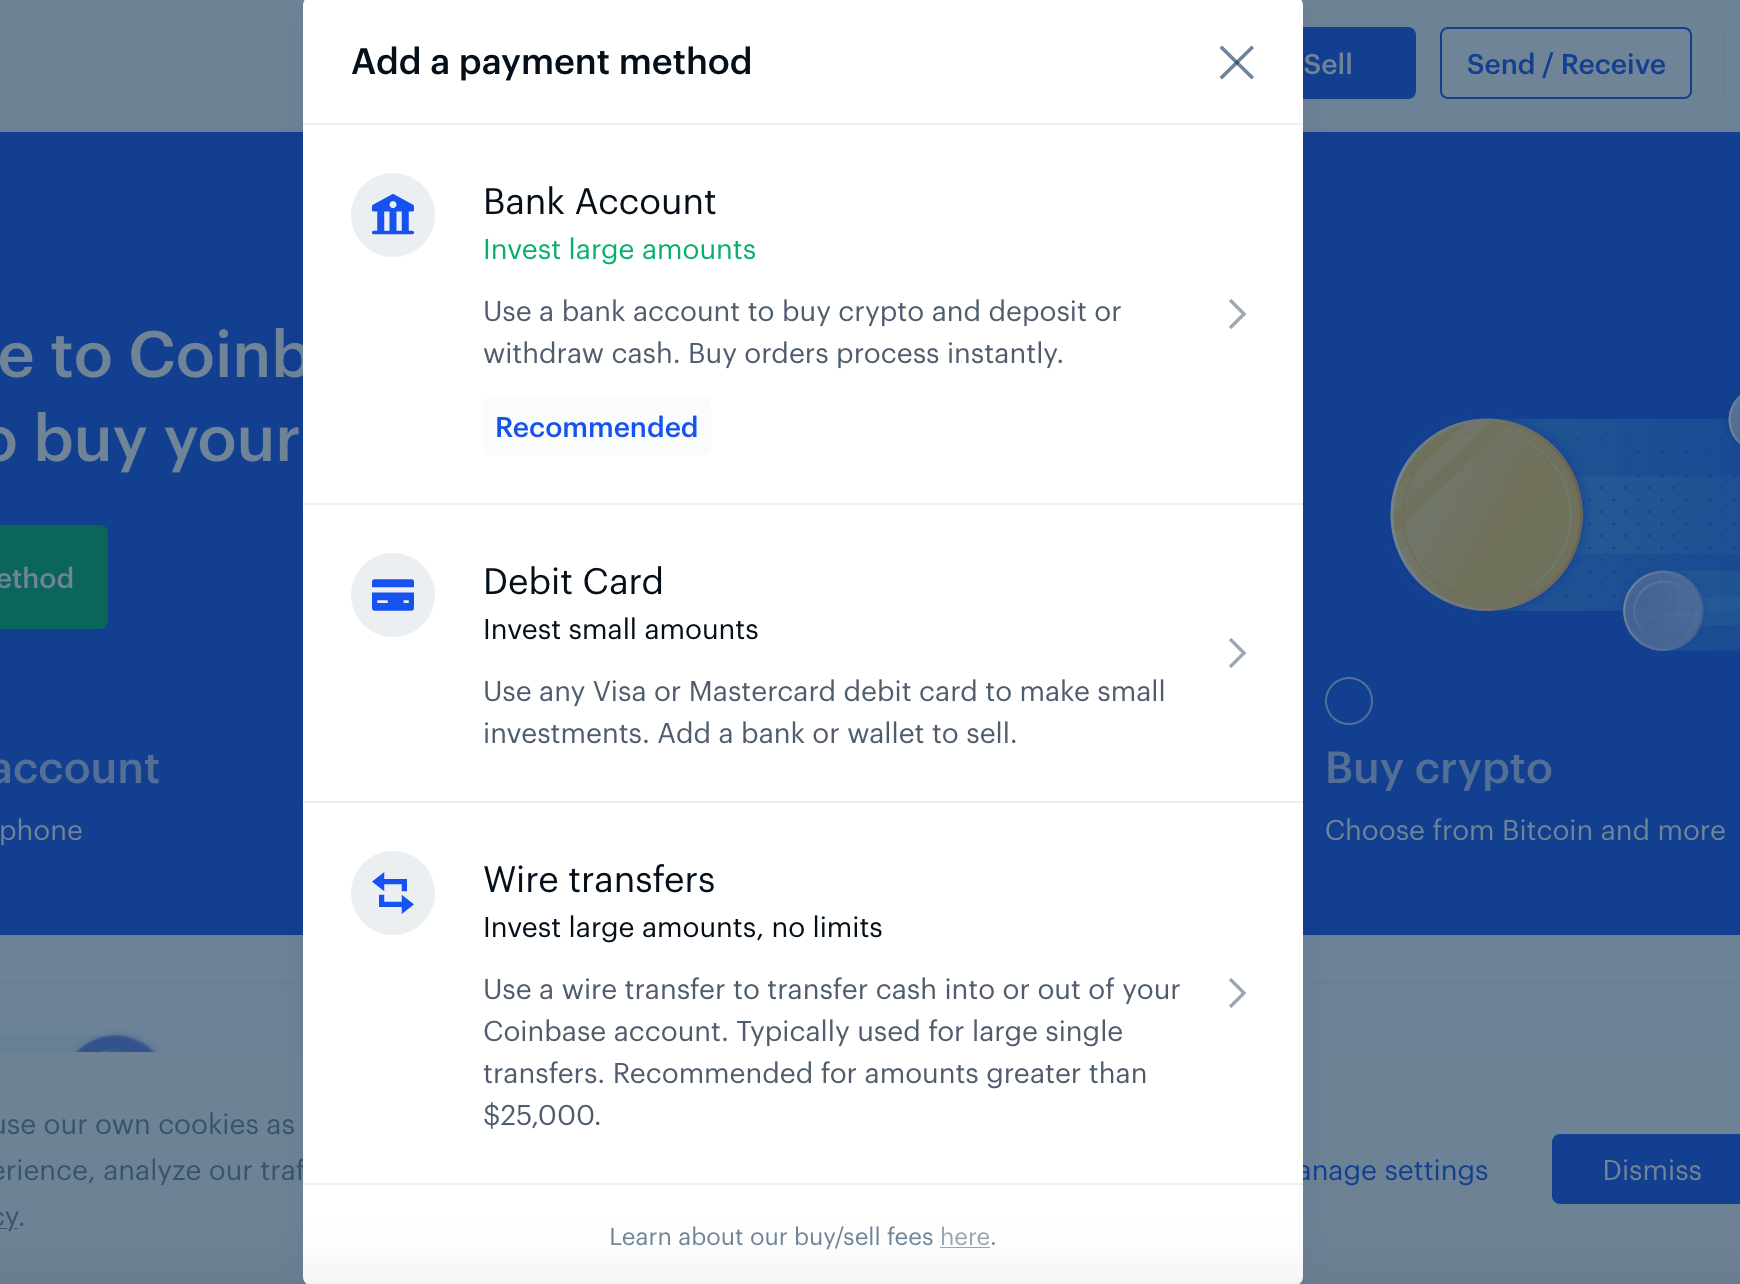 Reiff payment method screenshot